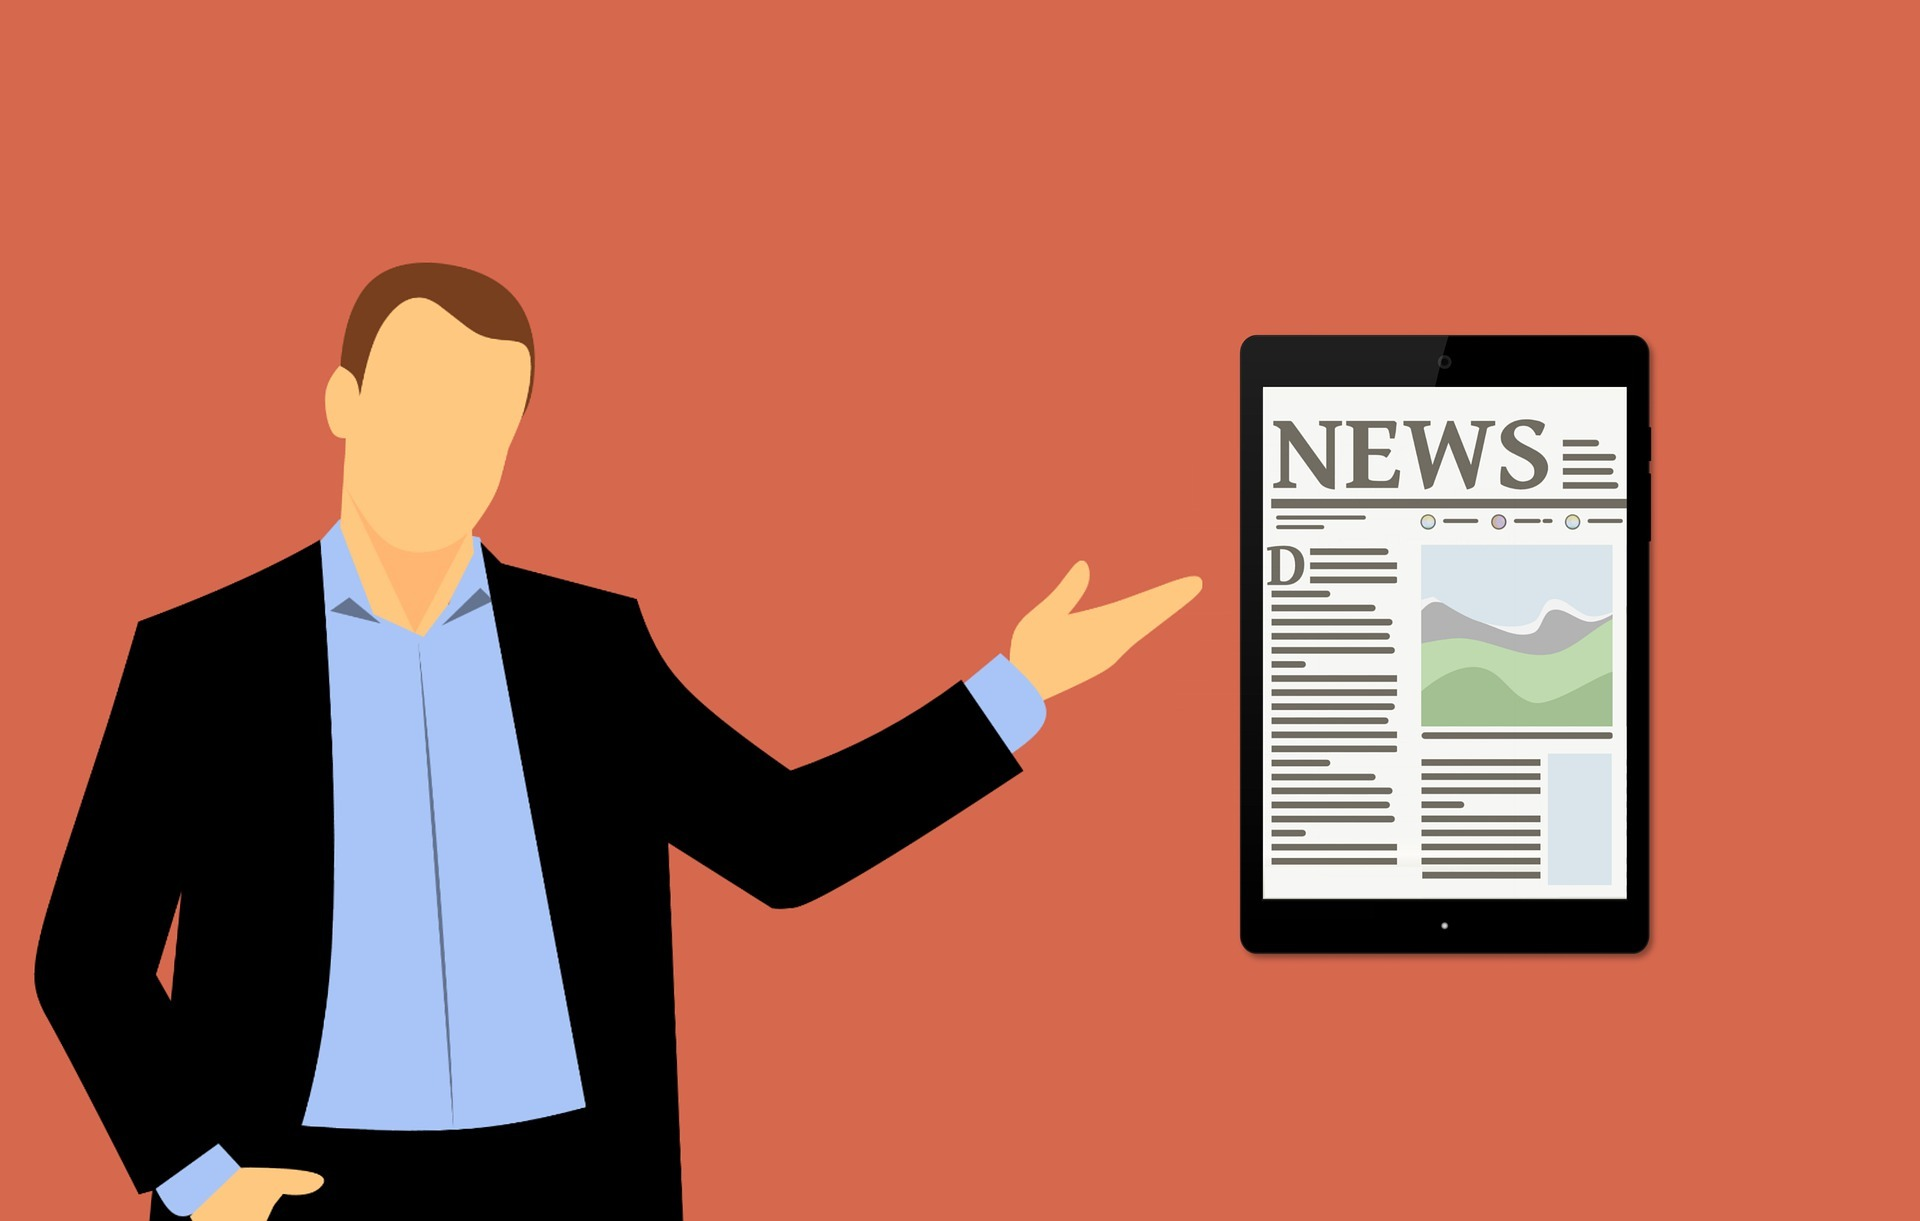 Using breaking news for content ideation